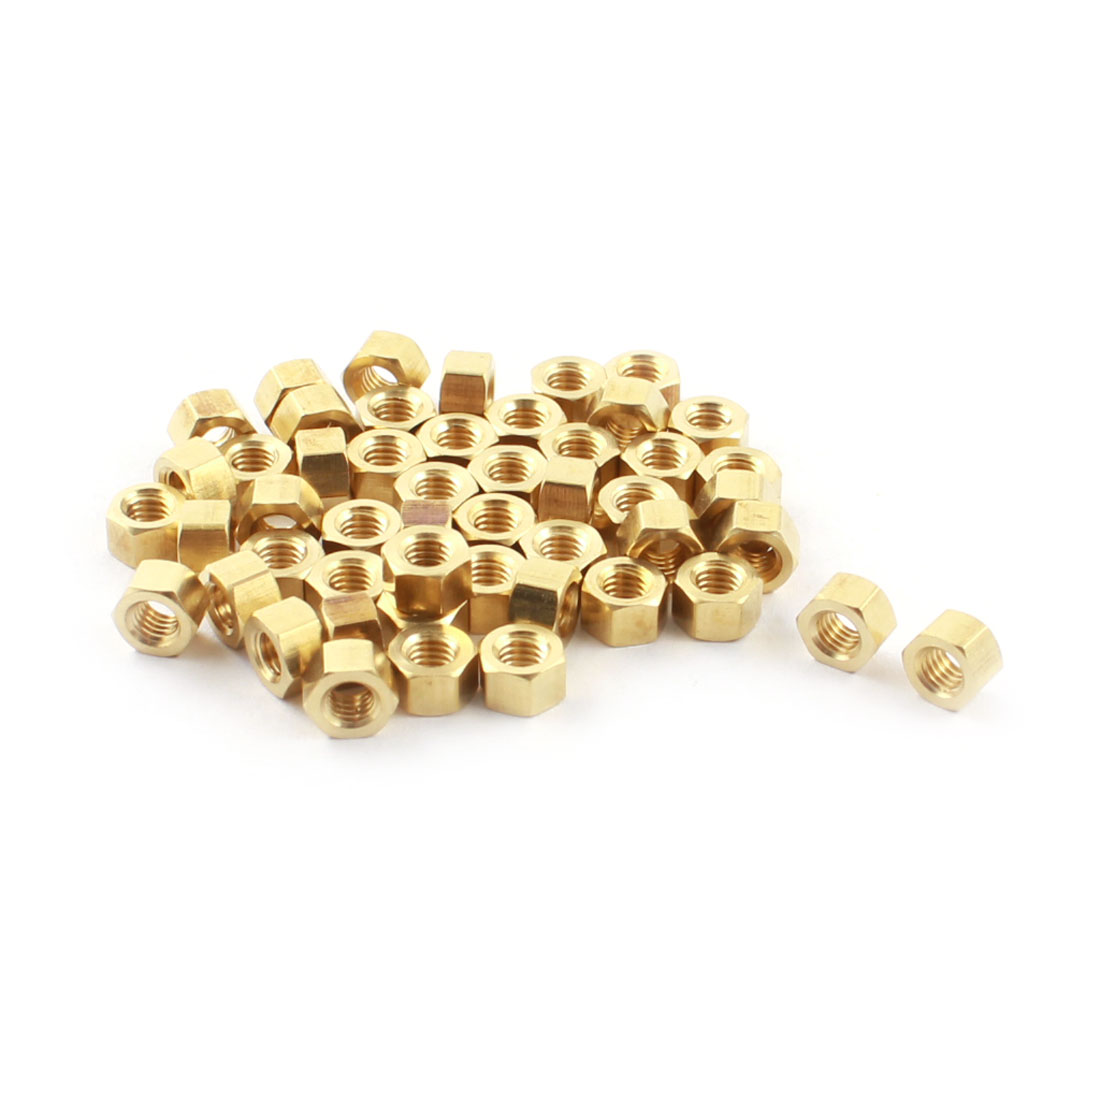 50Pcs M3 x 3mm Female Thread Gold Tone Brass Pillar PCB Hexagonal Nut Standoff Spacer